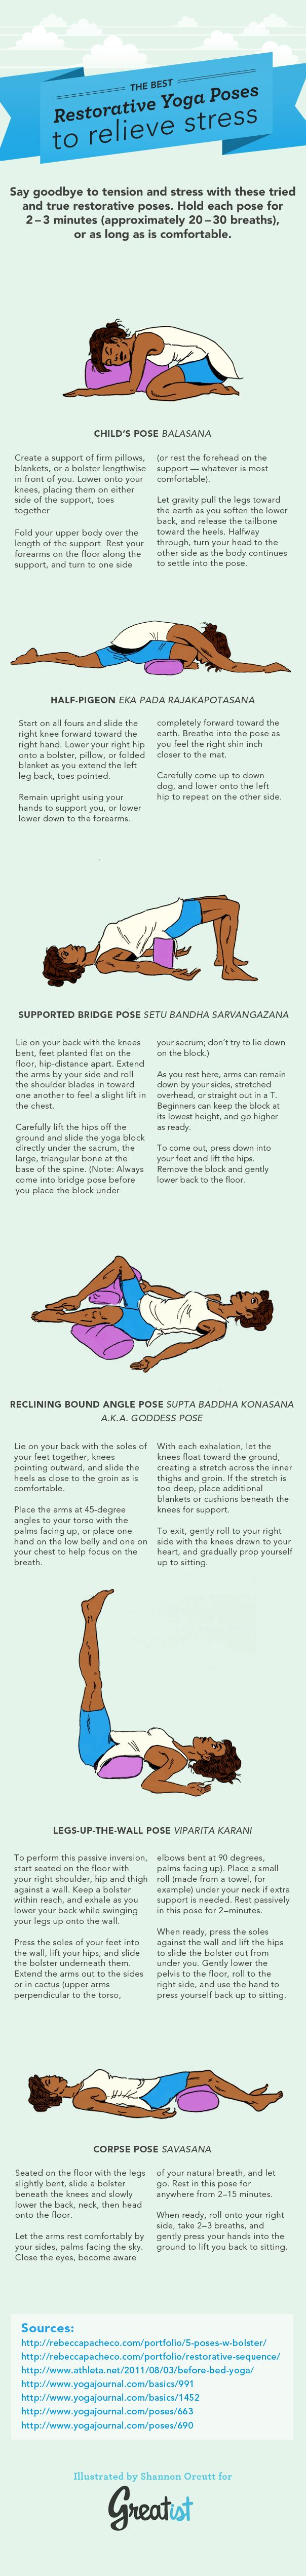 When it's time to reduce stress in the body and mind, sink into this easy-to-follow series of restorative yoga poses. Relaxation is just a few breaths away.